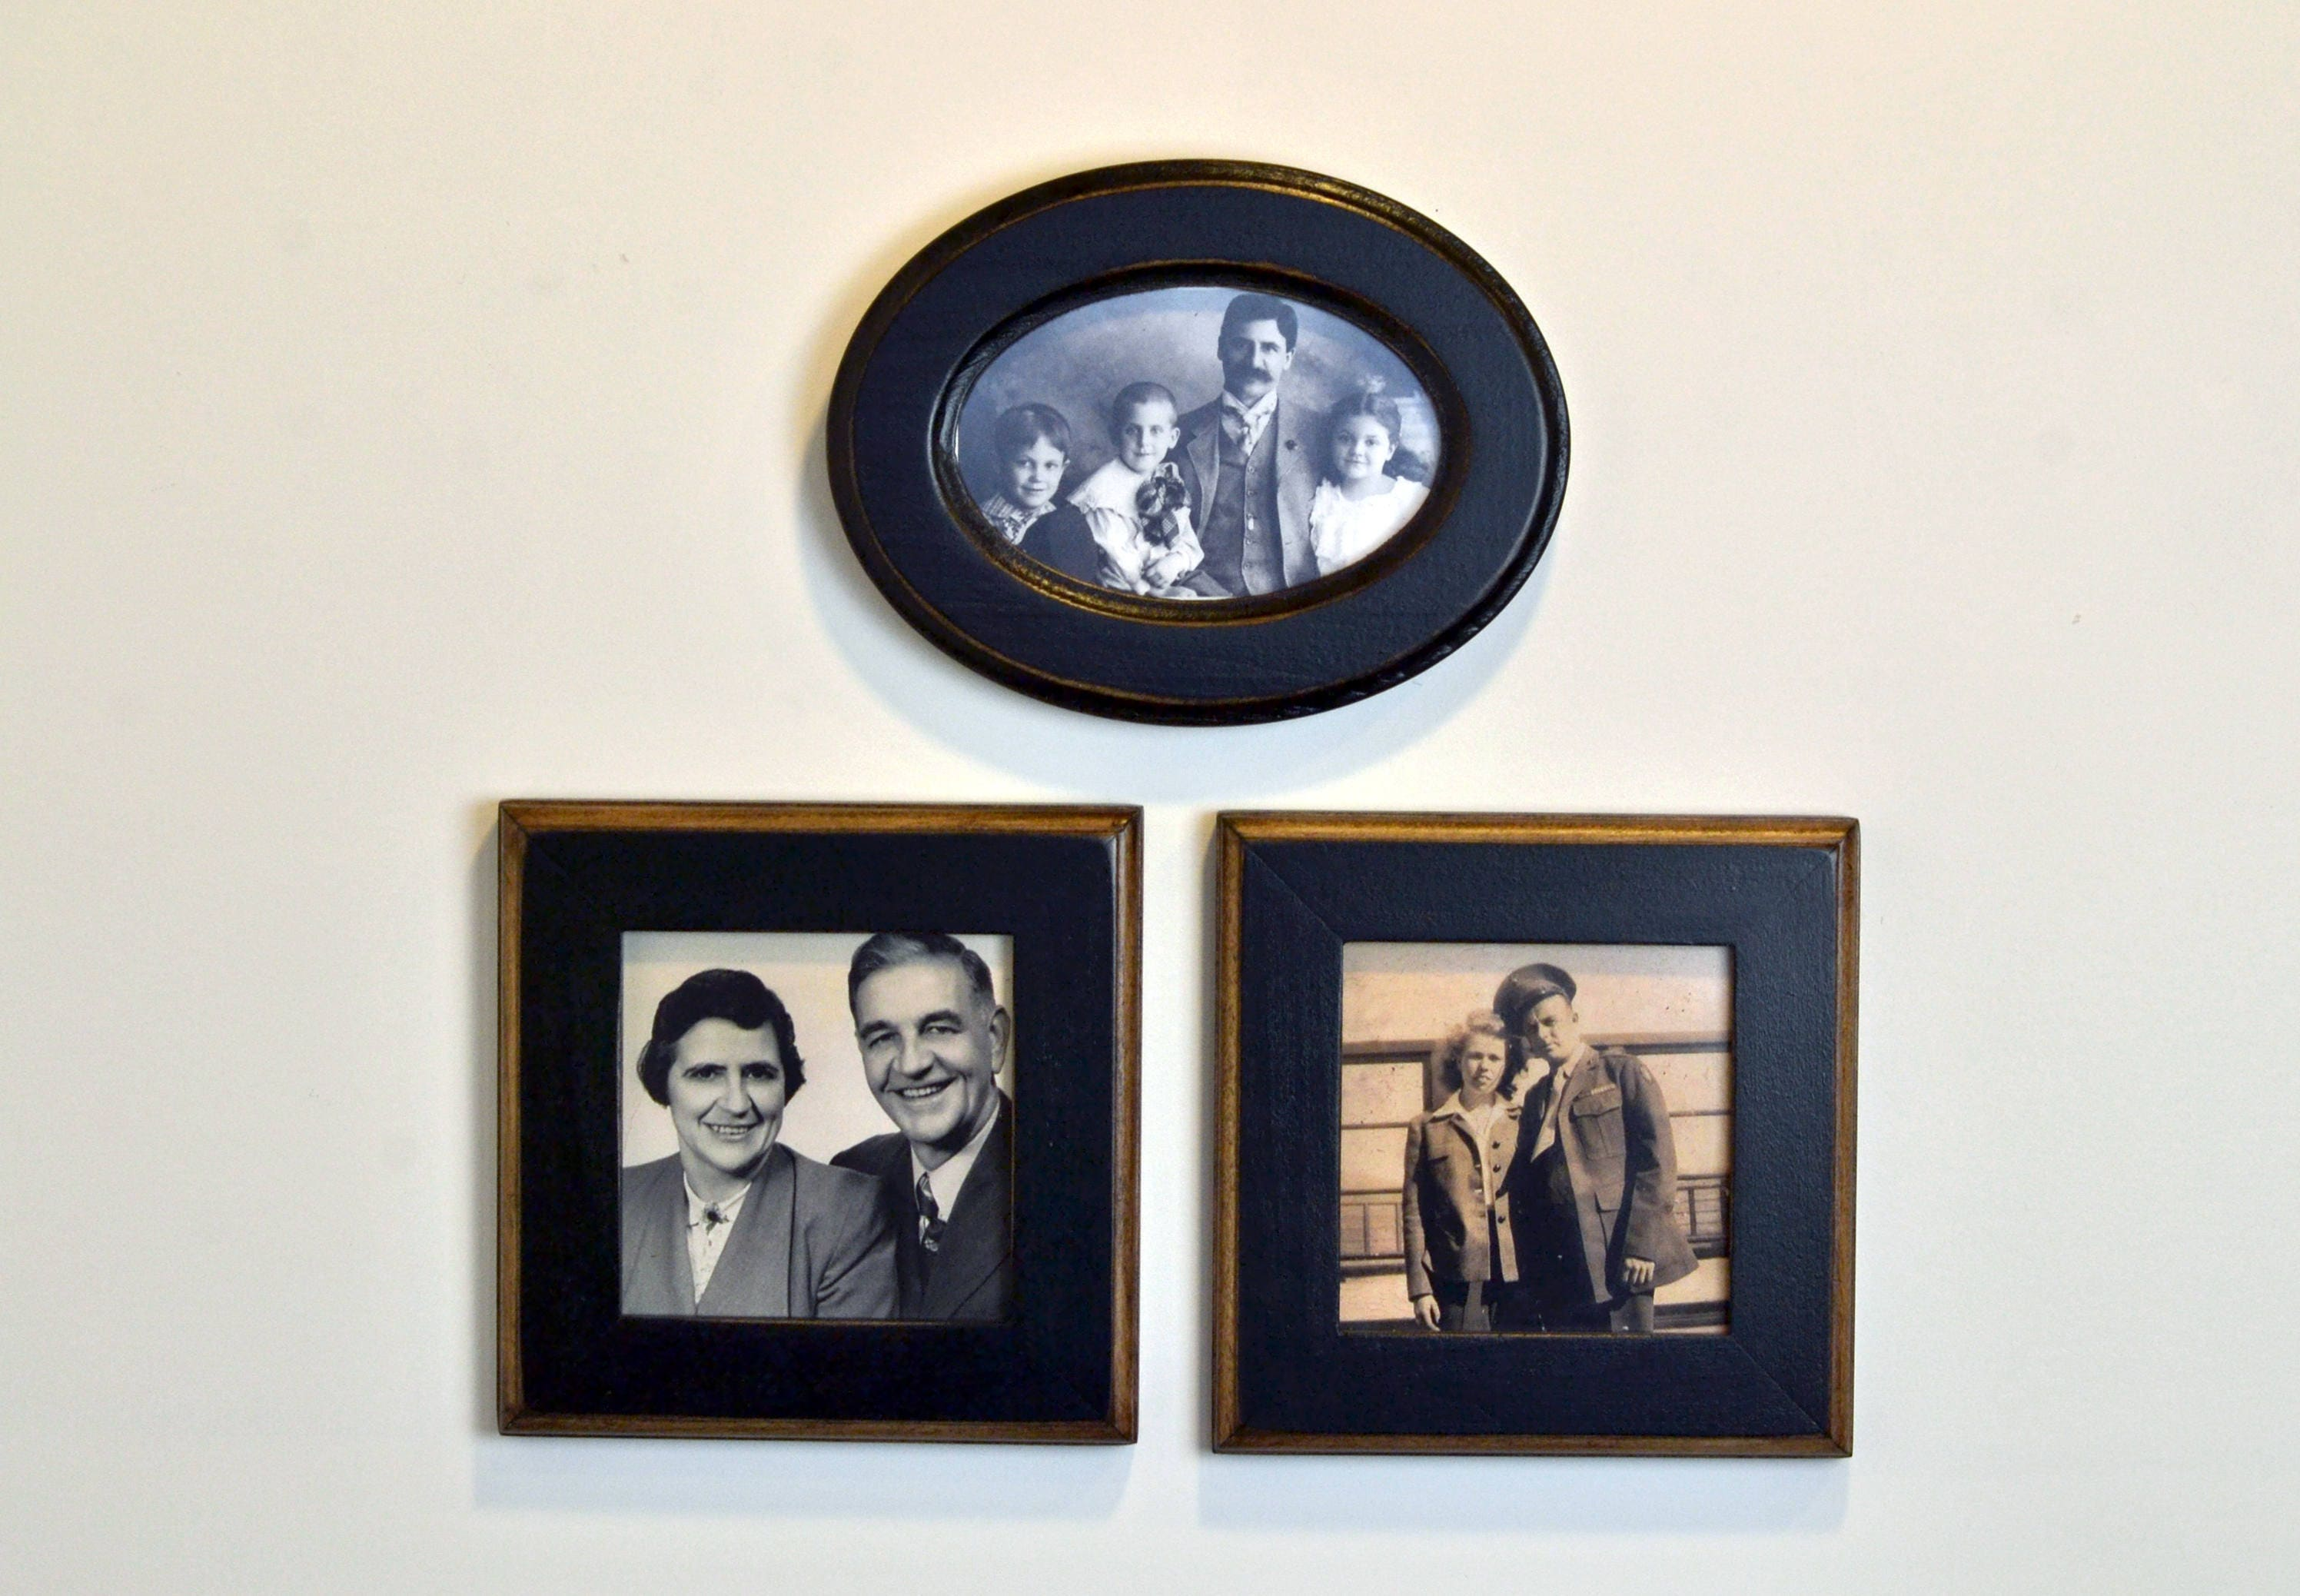 Photo Printing Service - Send Your Framed Photo - We print your hi ...